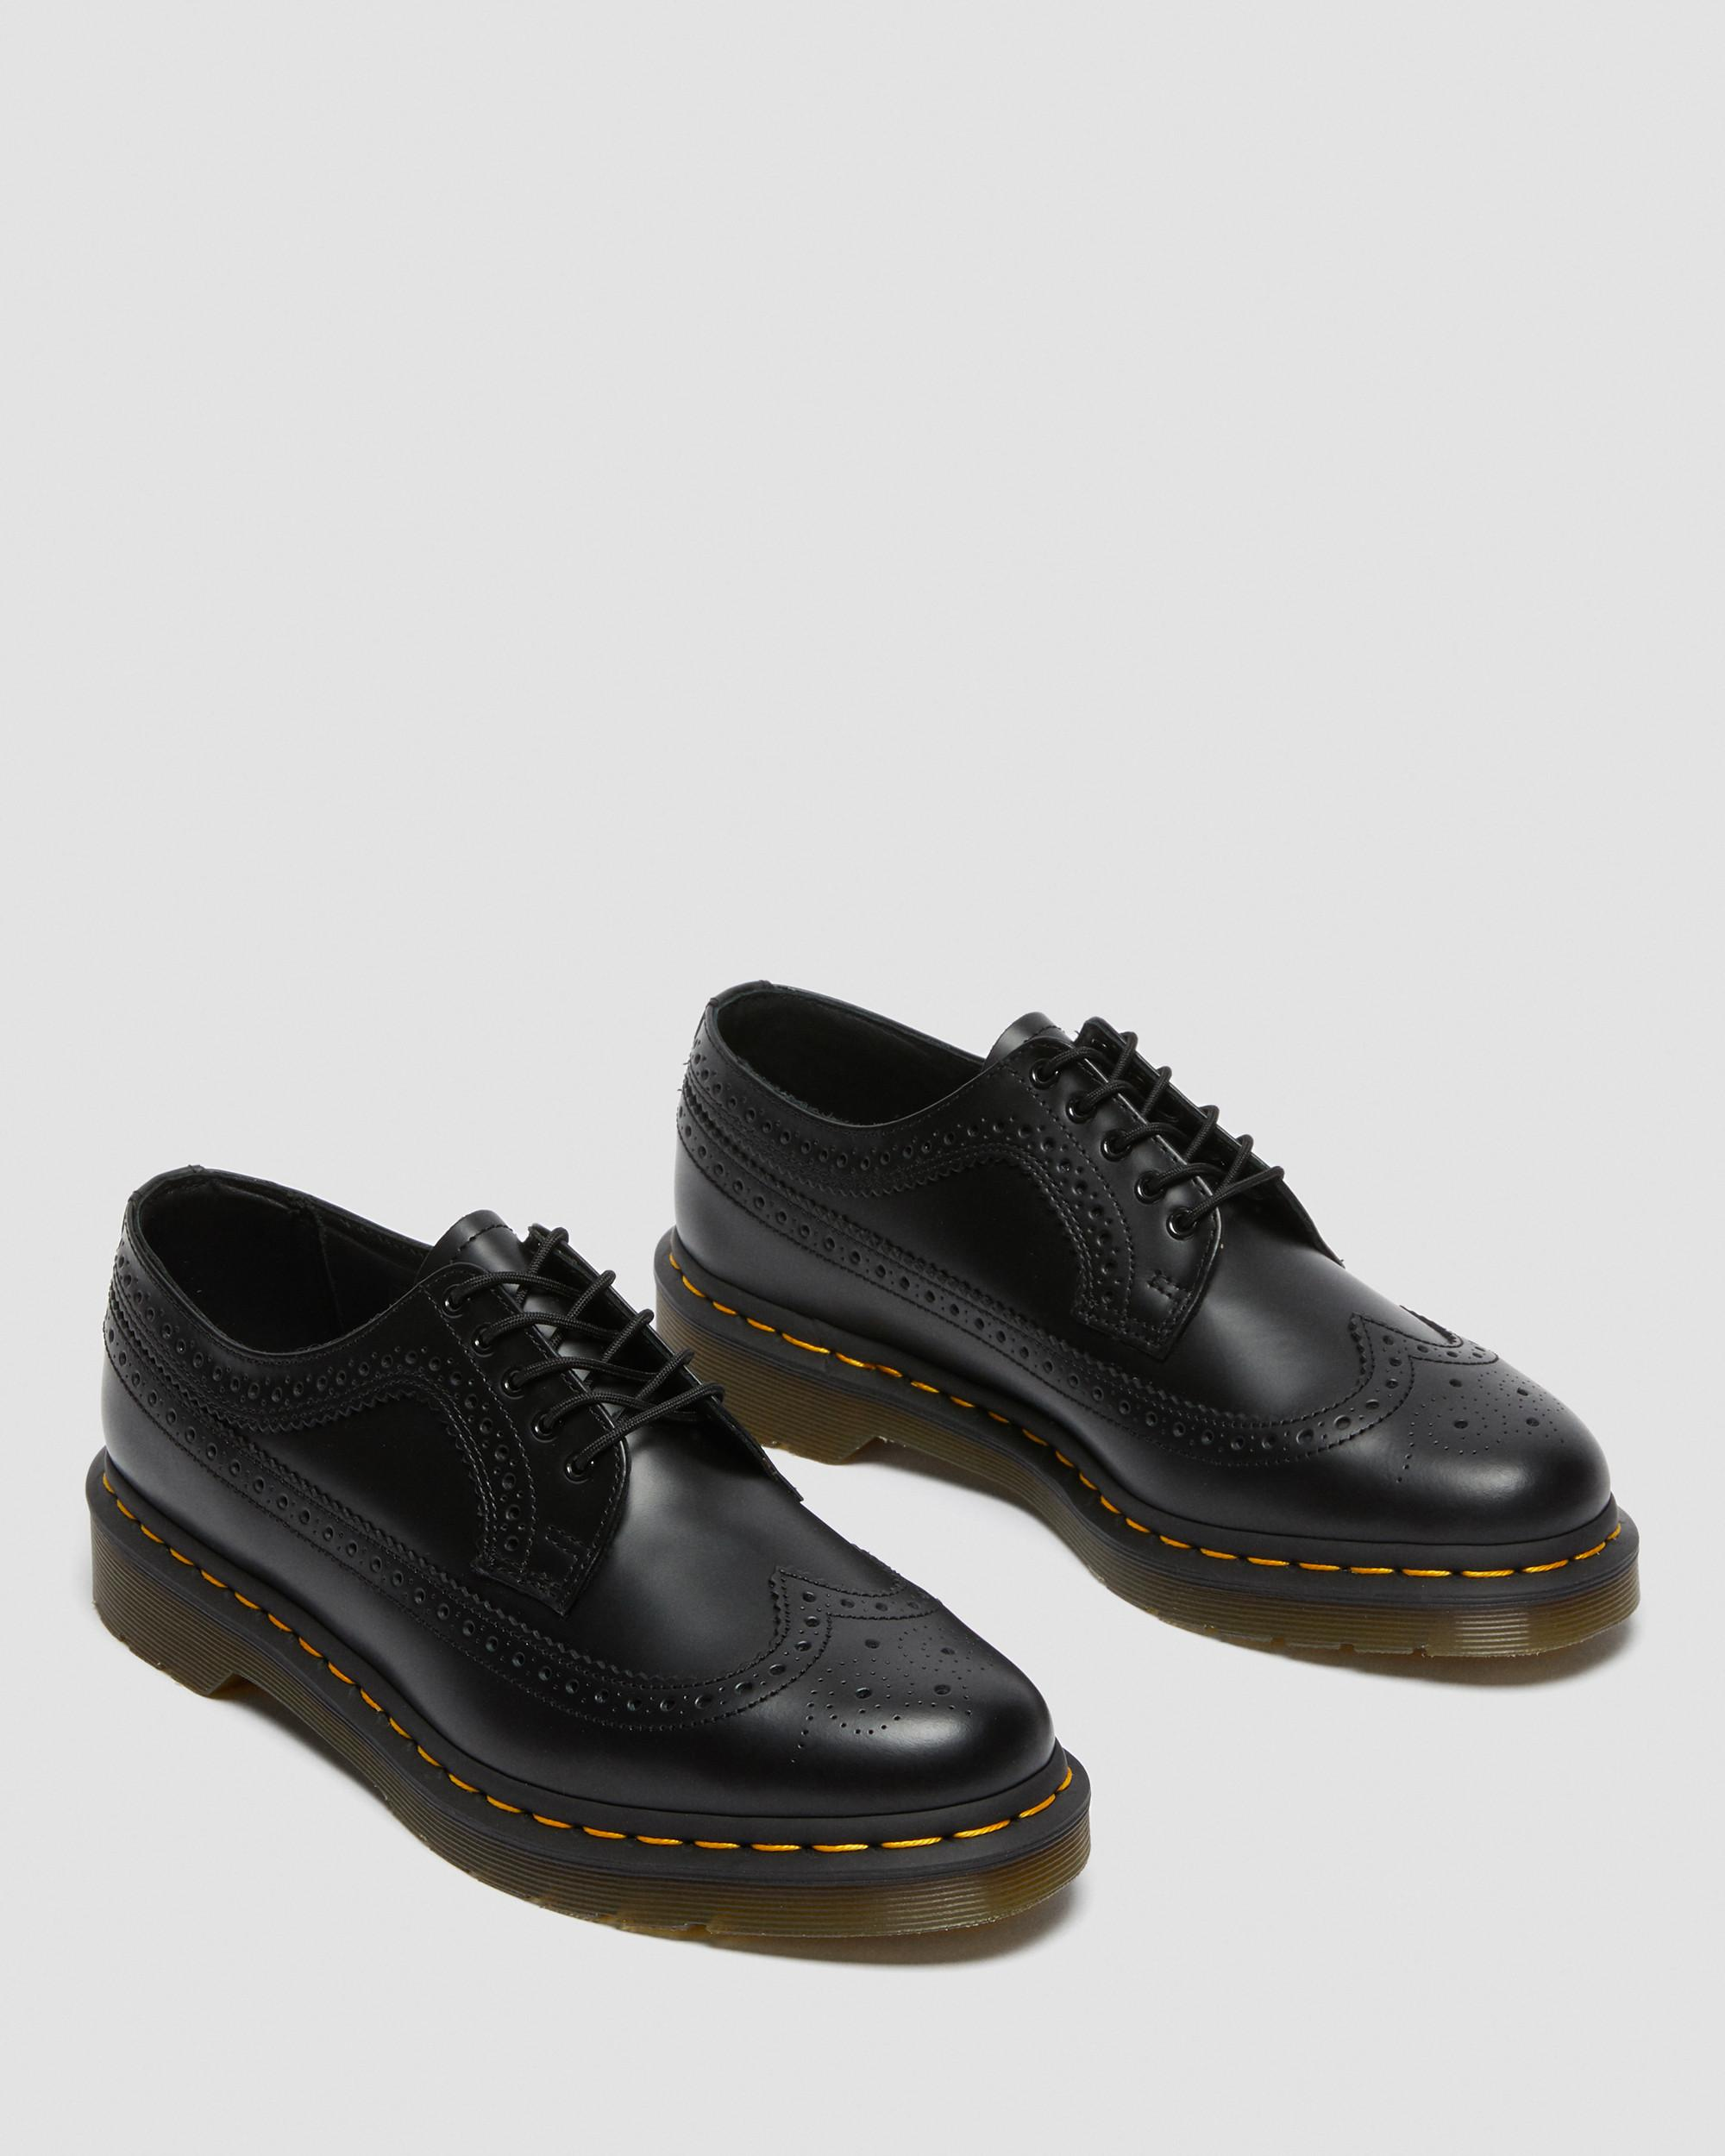 Infant 11 - Youth 5.5 Boys Mid Brown Brogue Casual Shoe